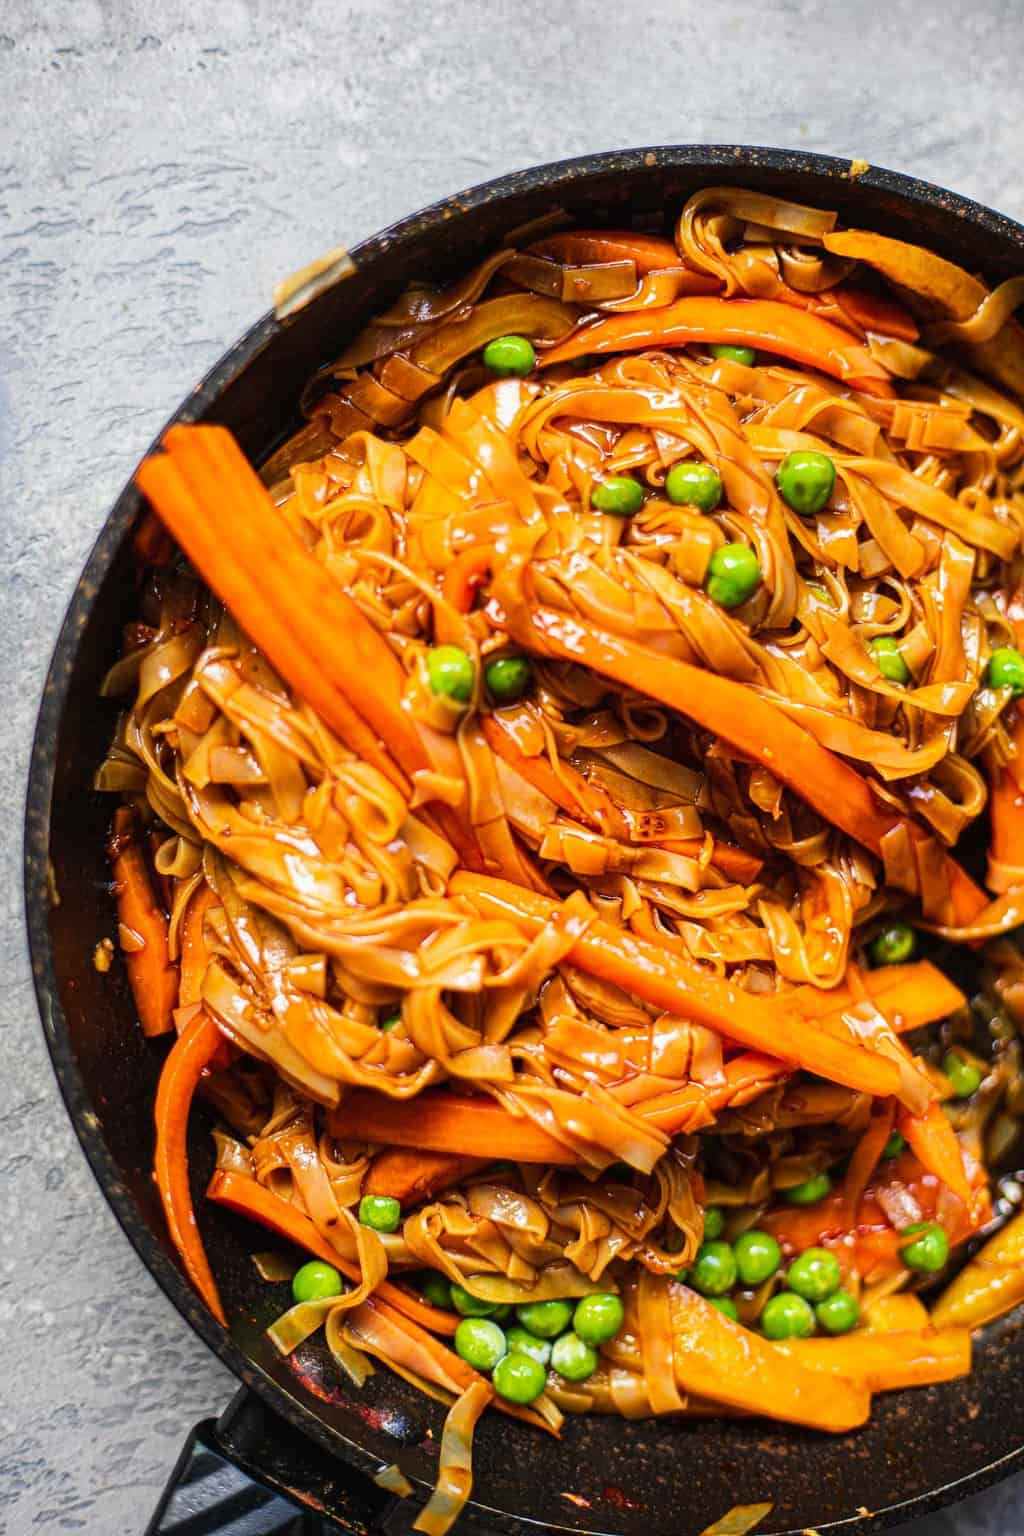 Close up of a frying pan with noodles and vegetables